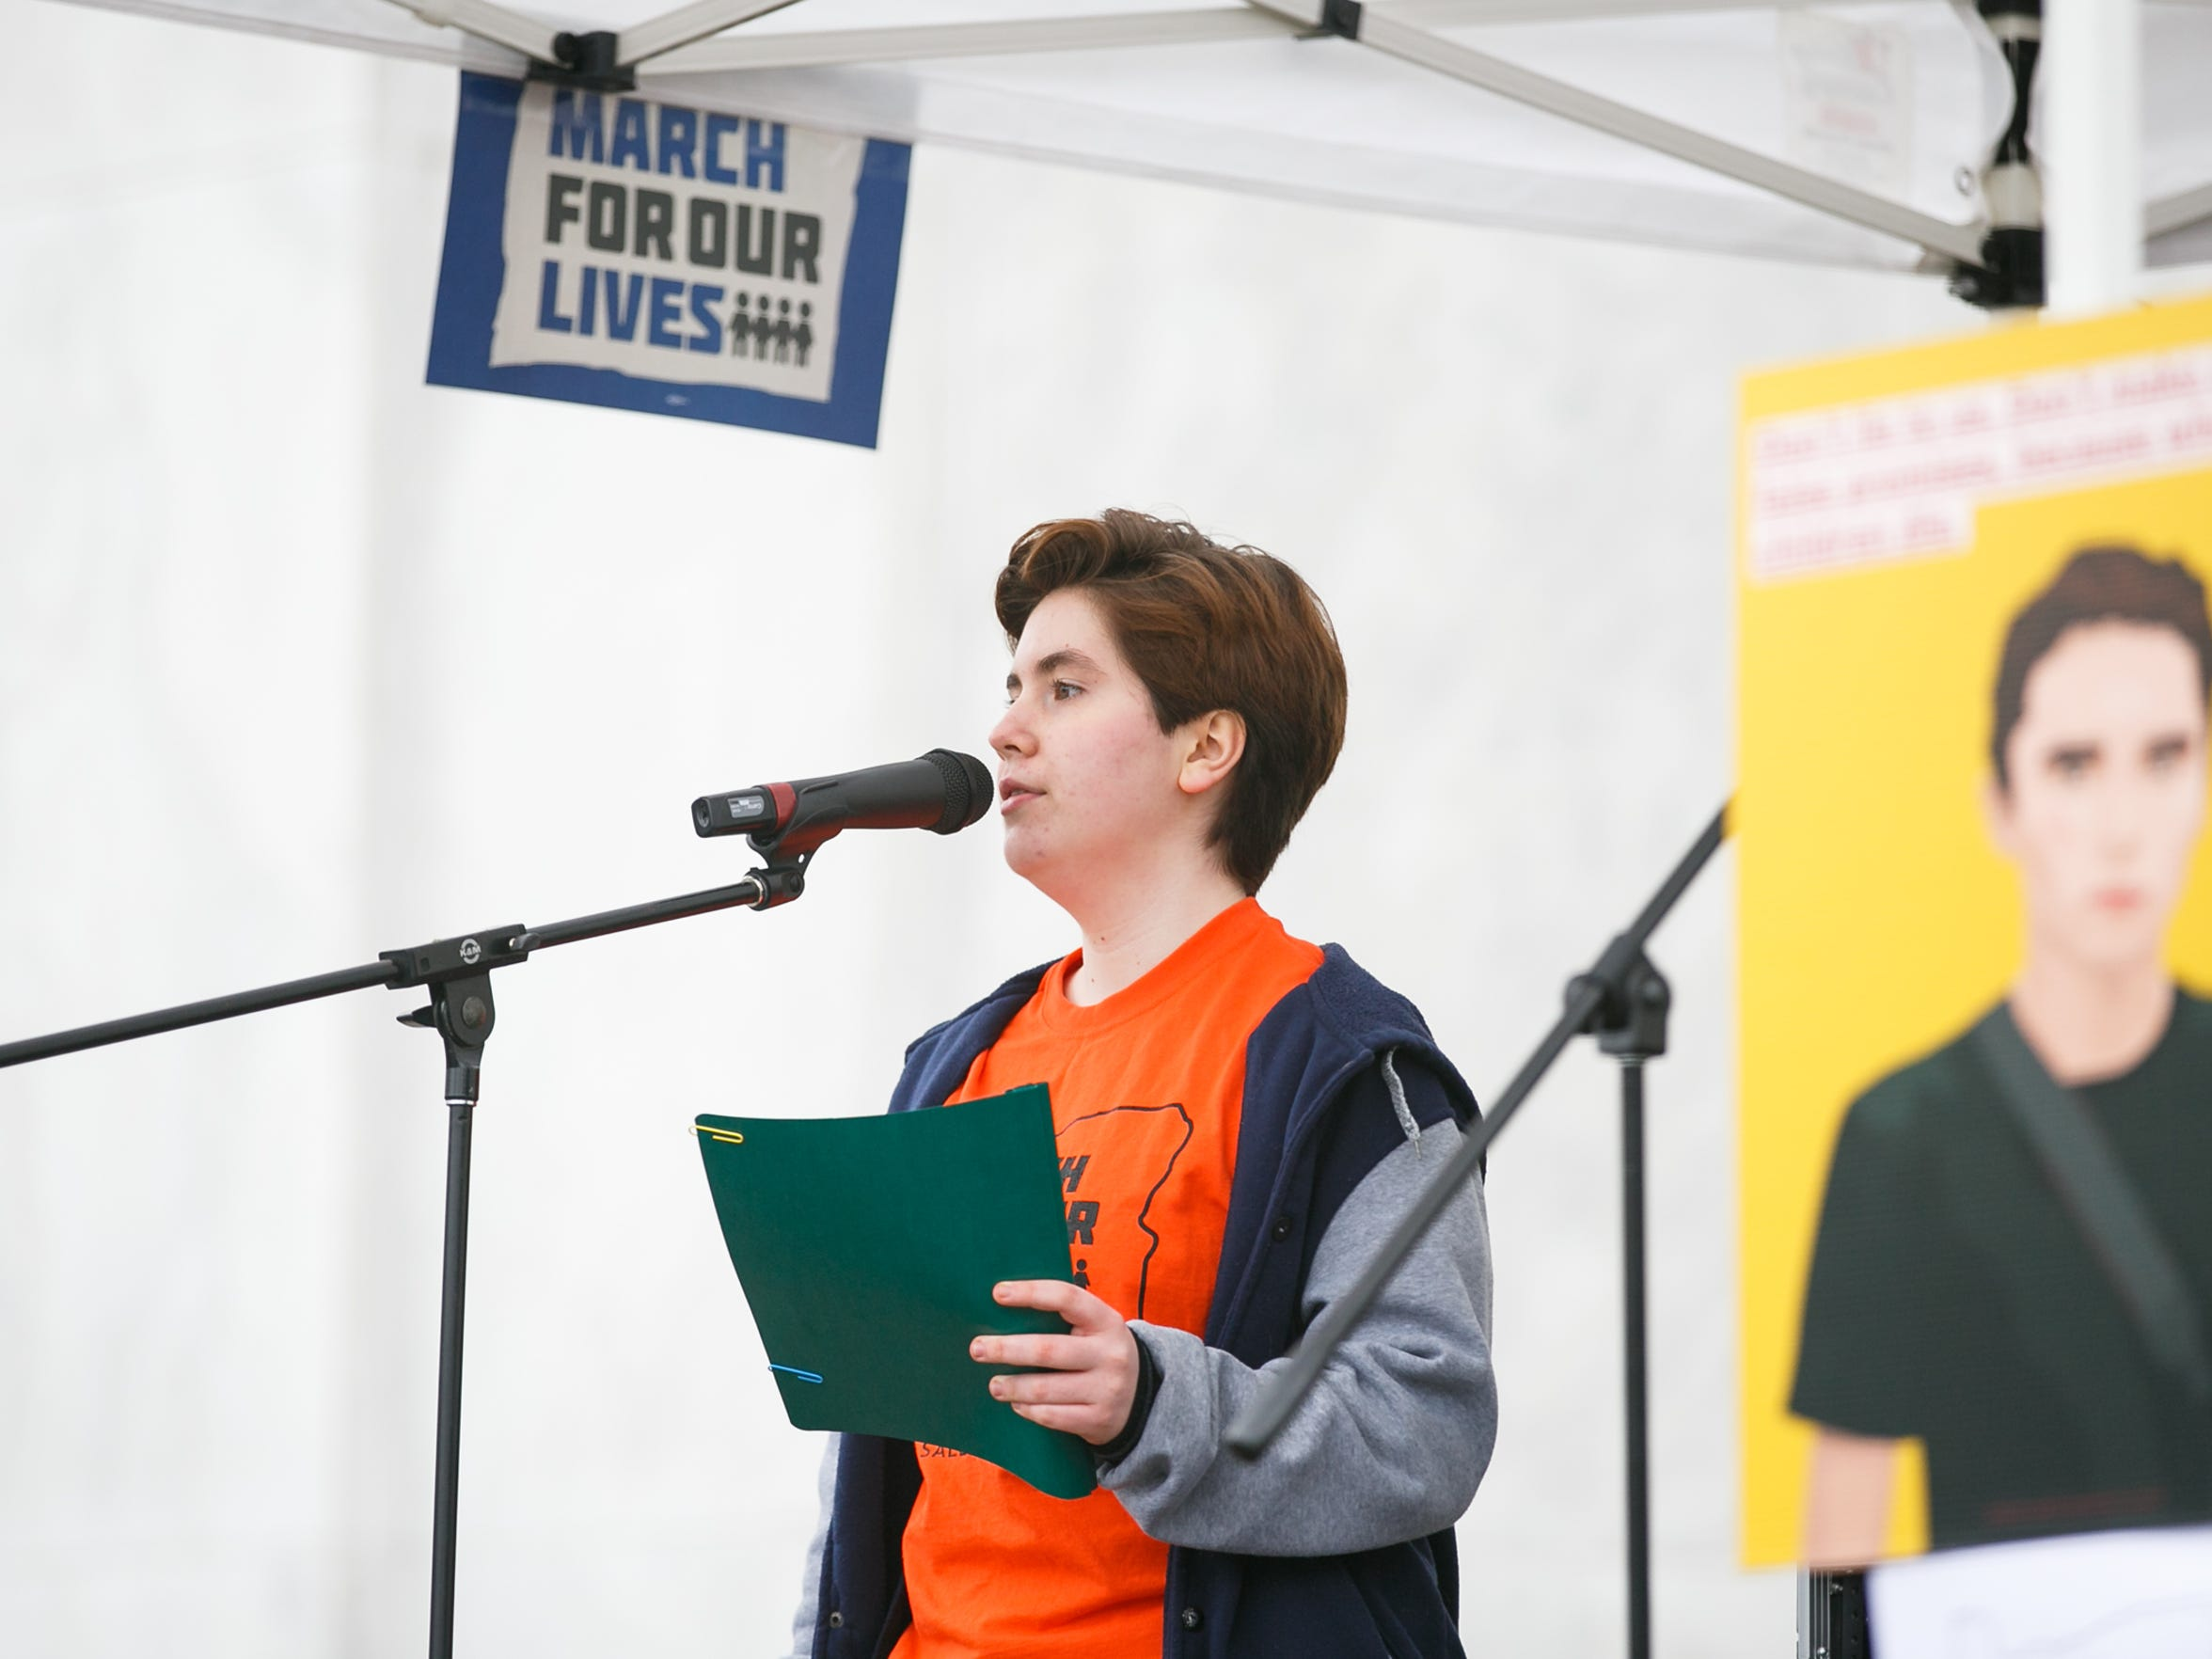 Julian Holman speaks at the March for Our Lives rally on Saturday, March 24, 2018, at the Oregon State Capitol. Holman called on participants to fight for the protection of lesbian, gay, bisexual and transgender individuals in the context of gun violence.